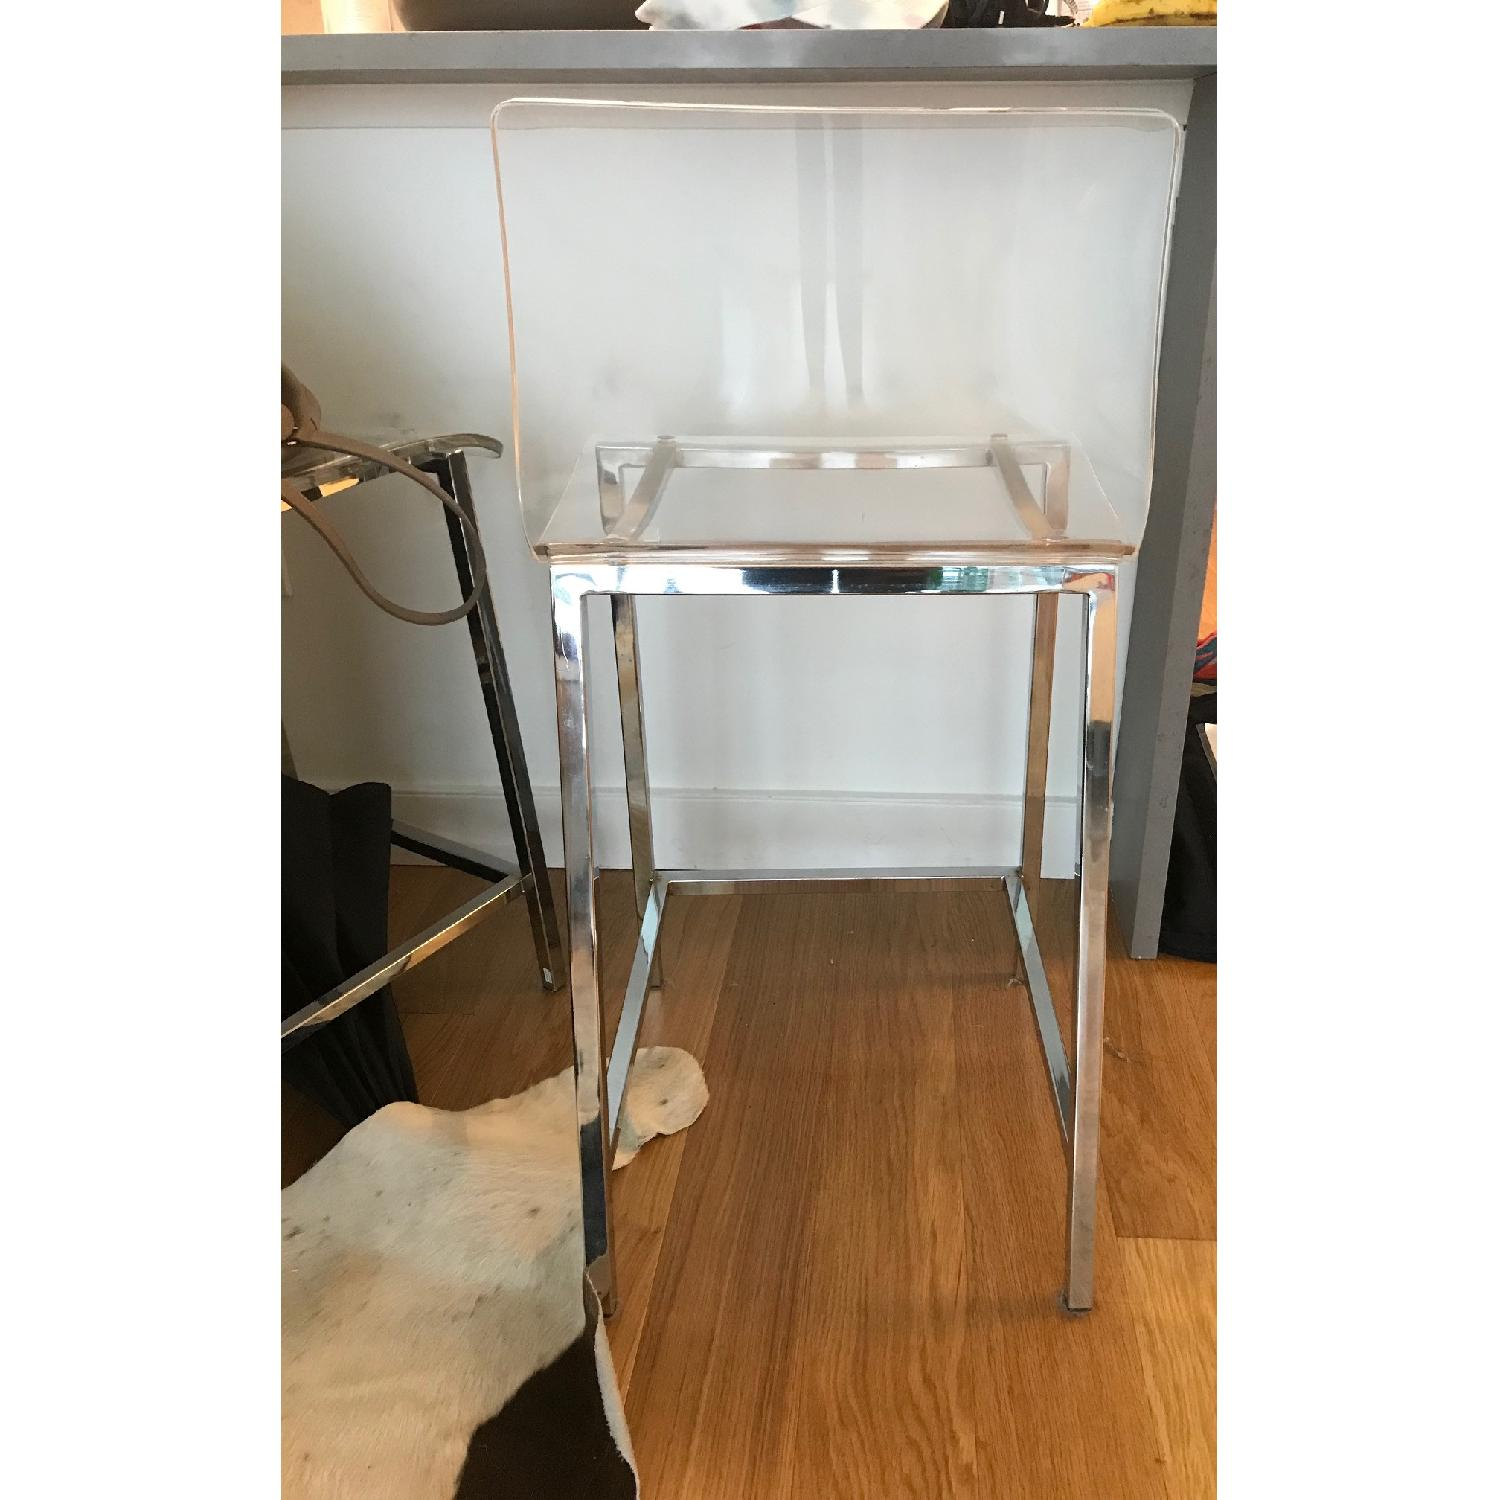 CB2 Clear Barstools in Nickel Finish - image-3